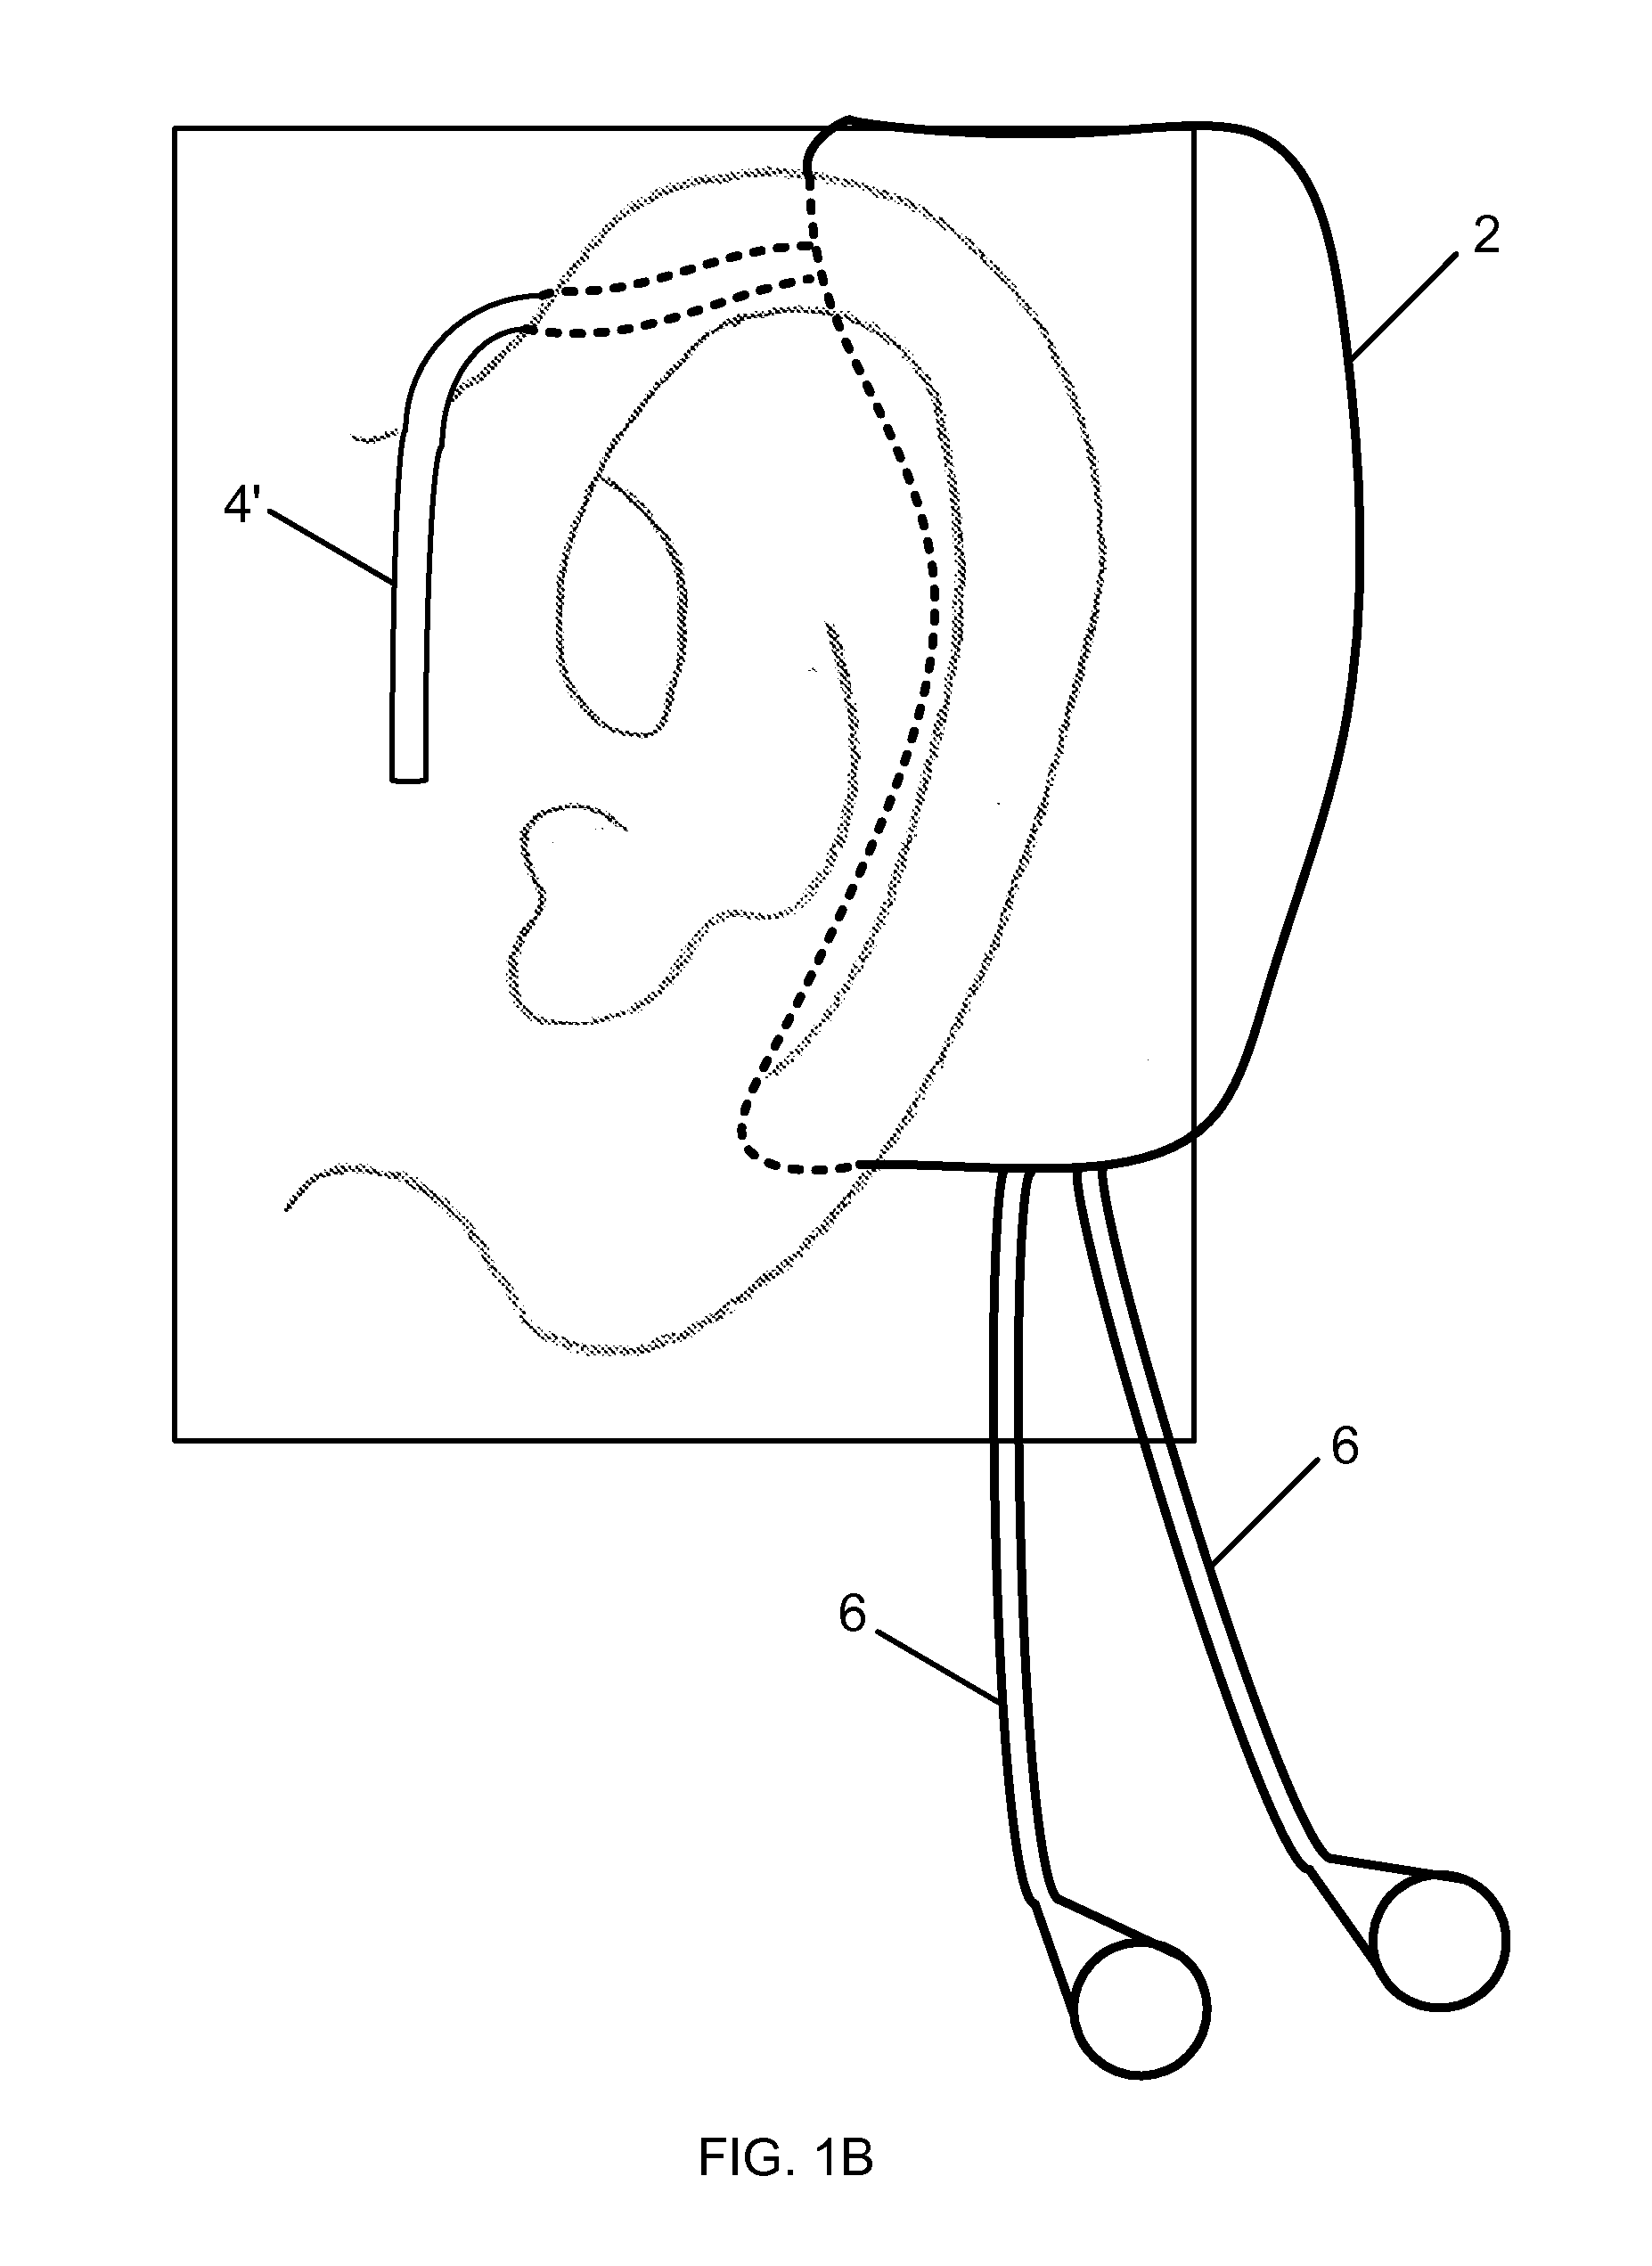 Patent drawing ecg the bcg or the ppg module